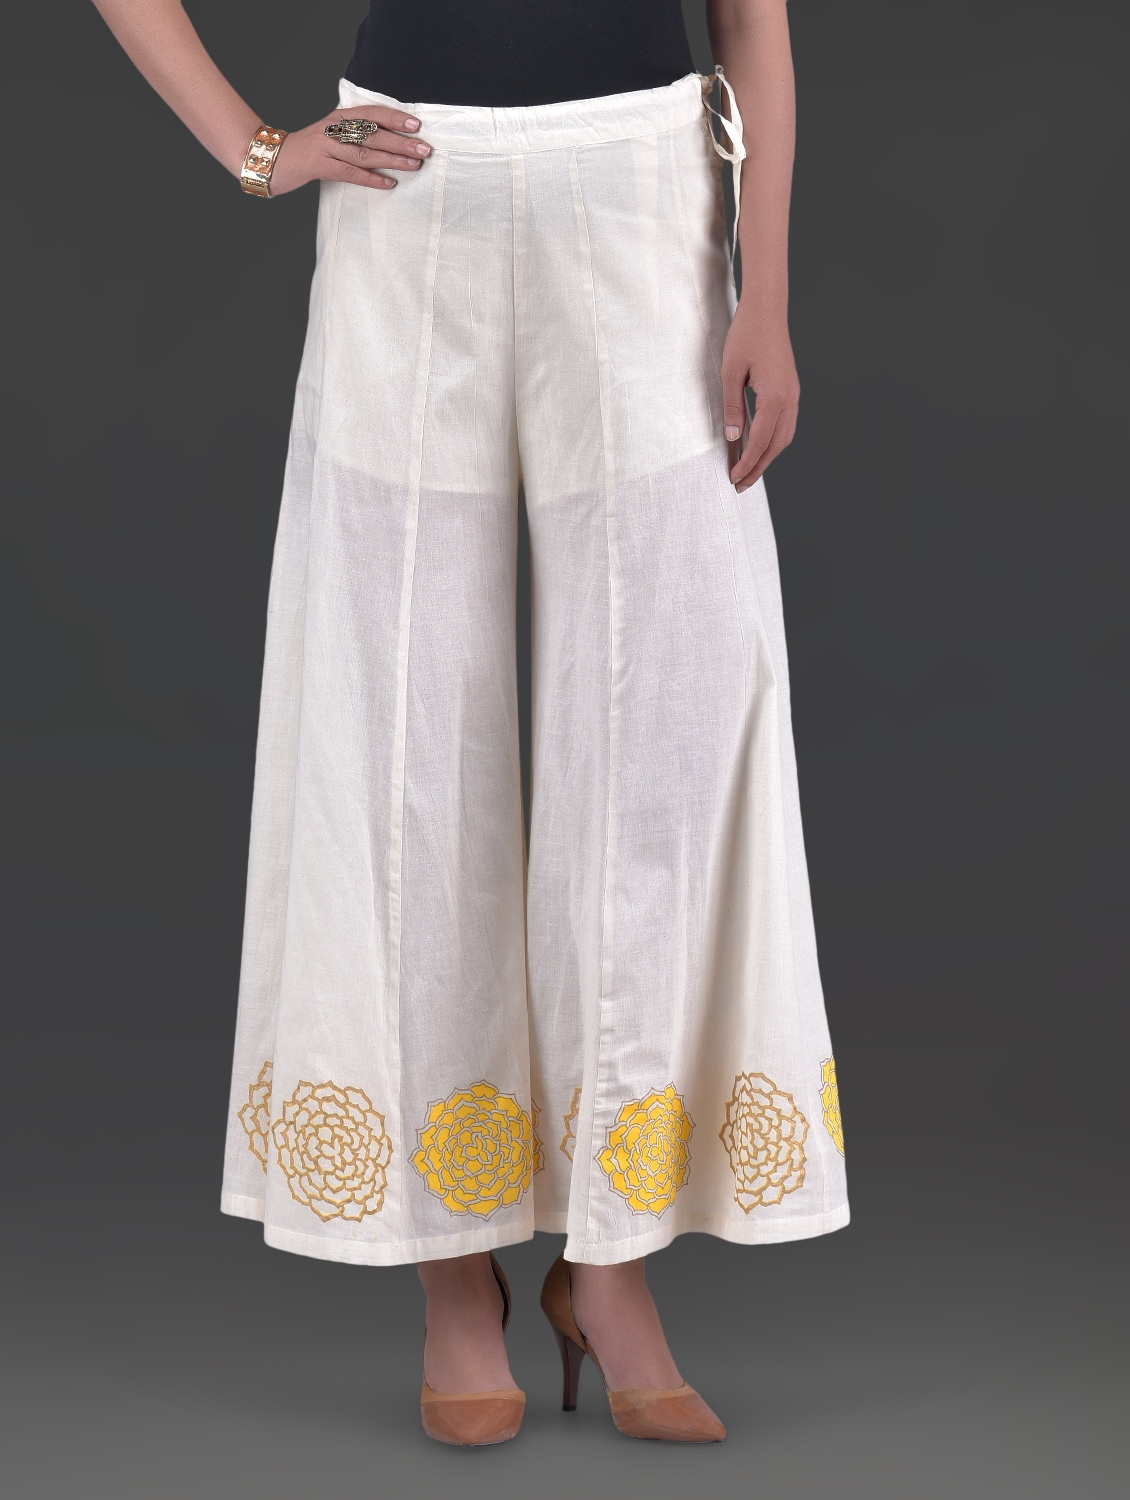 Widen your wardrobe repertoire with wide leg trousers. Taking you from desk to drinks, the high waisted and cropped ones spell sheer elegance. Pair with a top and mules for a perfect off-duty choice, or opt for print and linen styles for a transitional look.